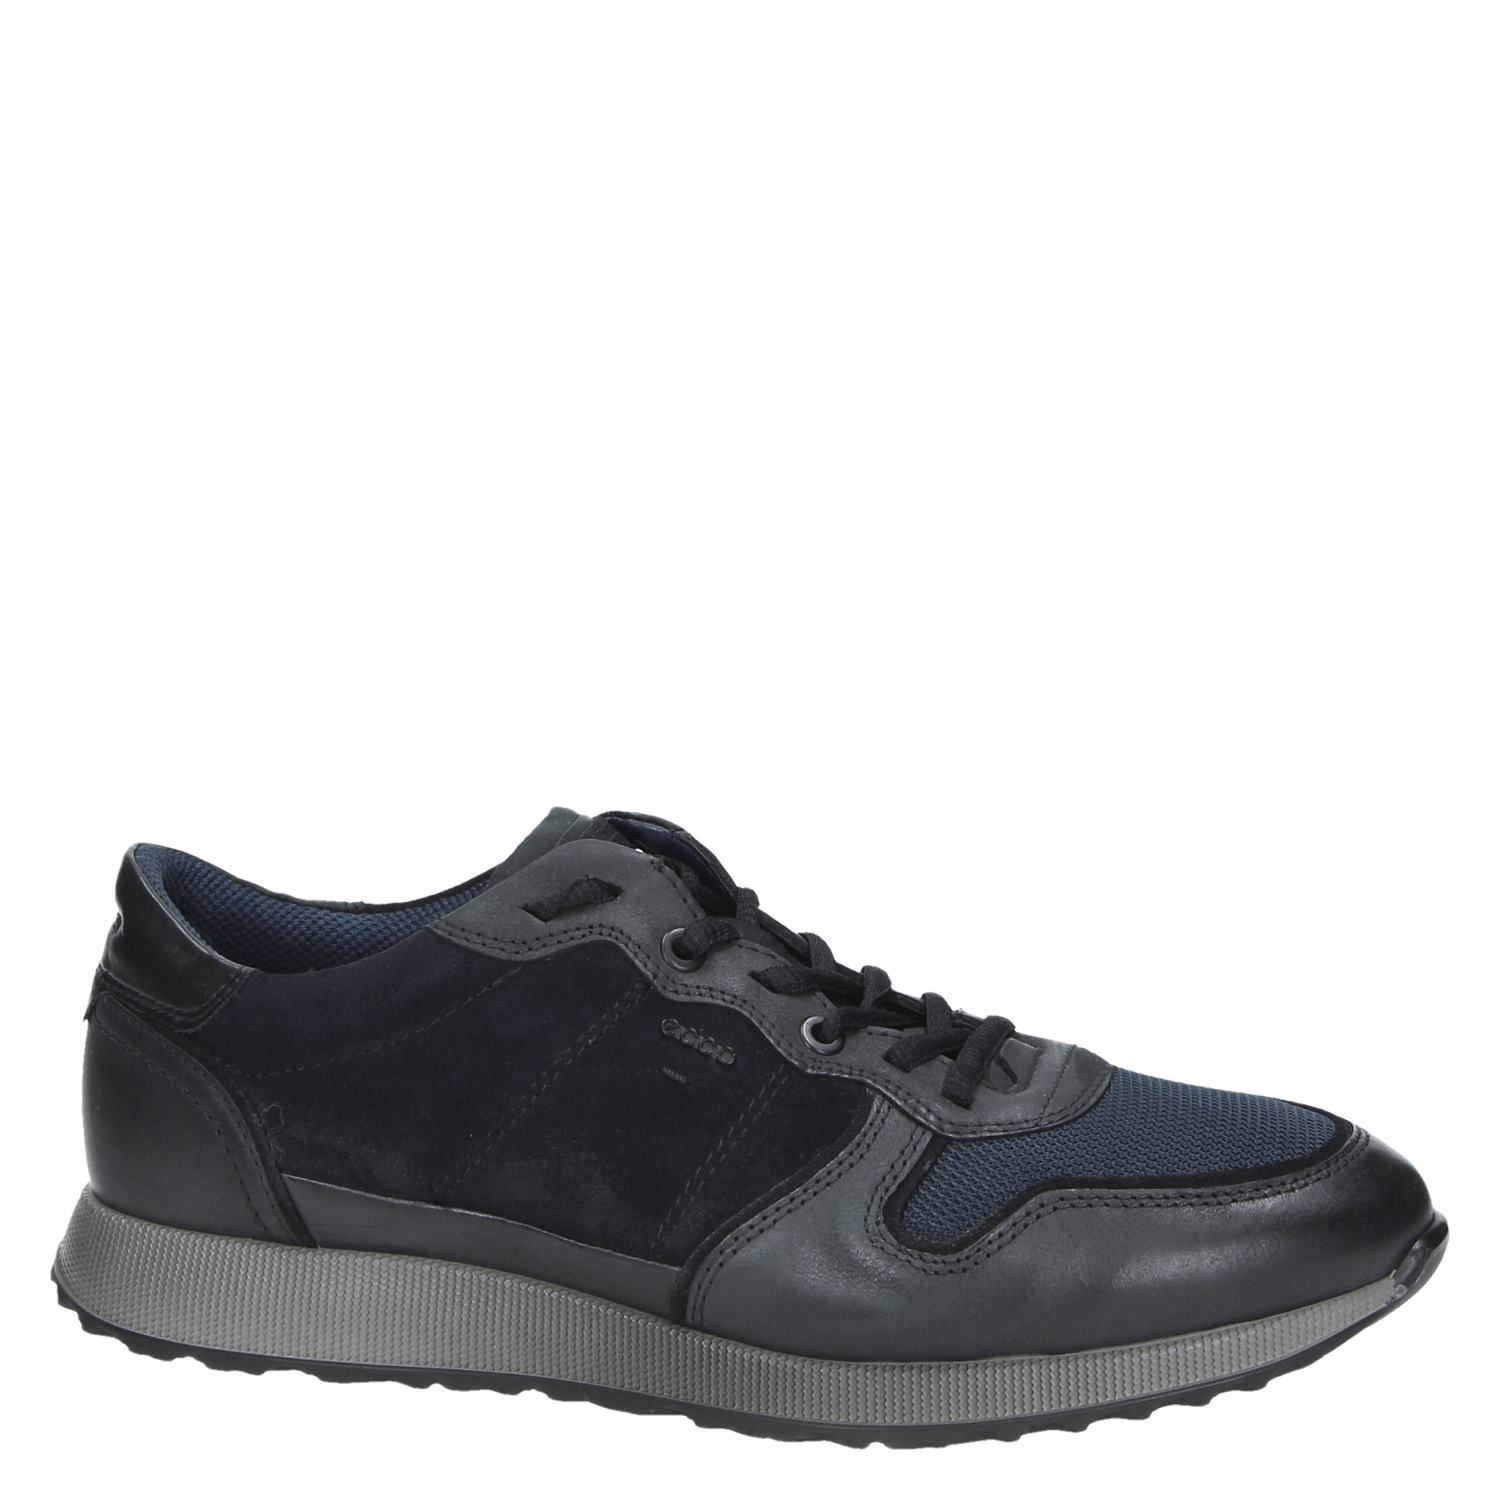 Ecco Sneak Mens heren lage sneakers blauw